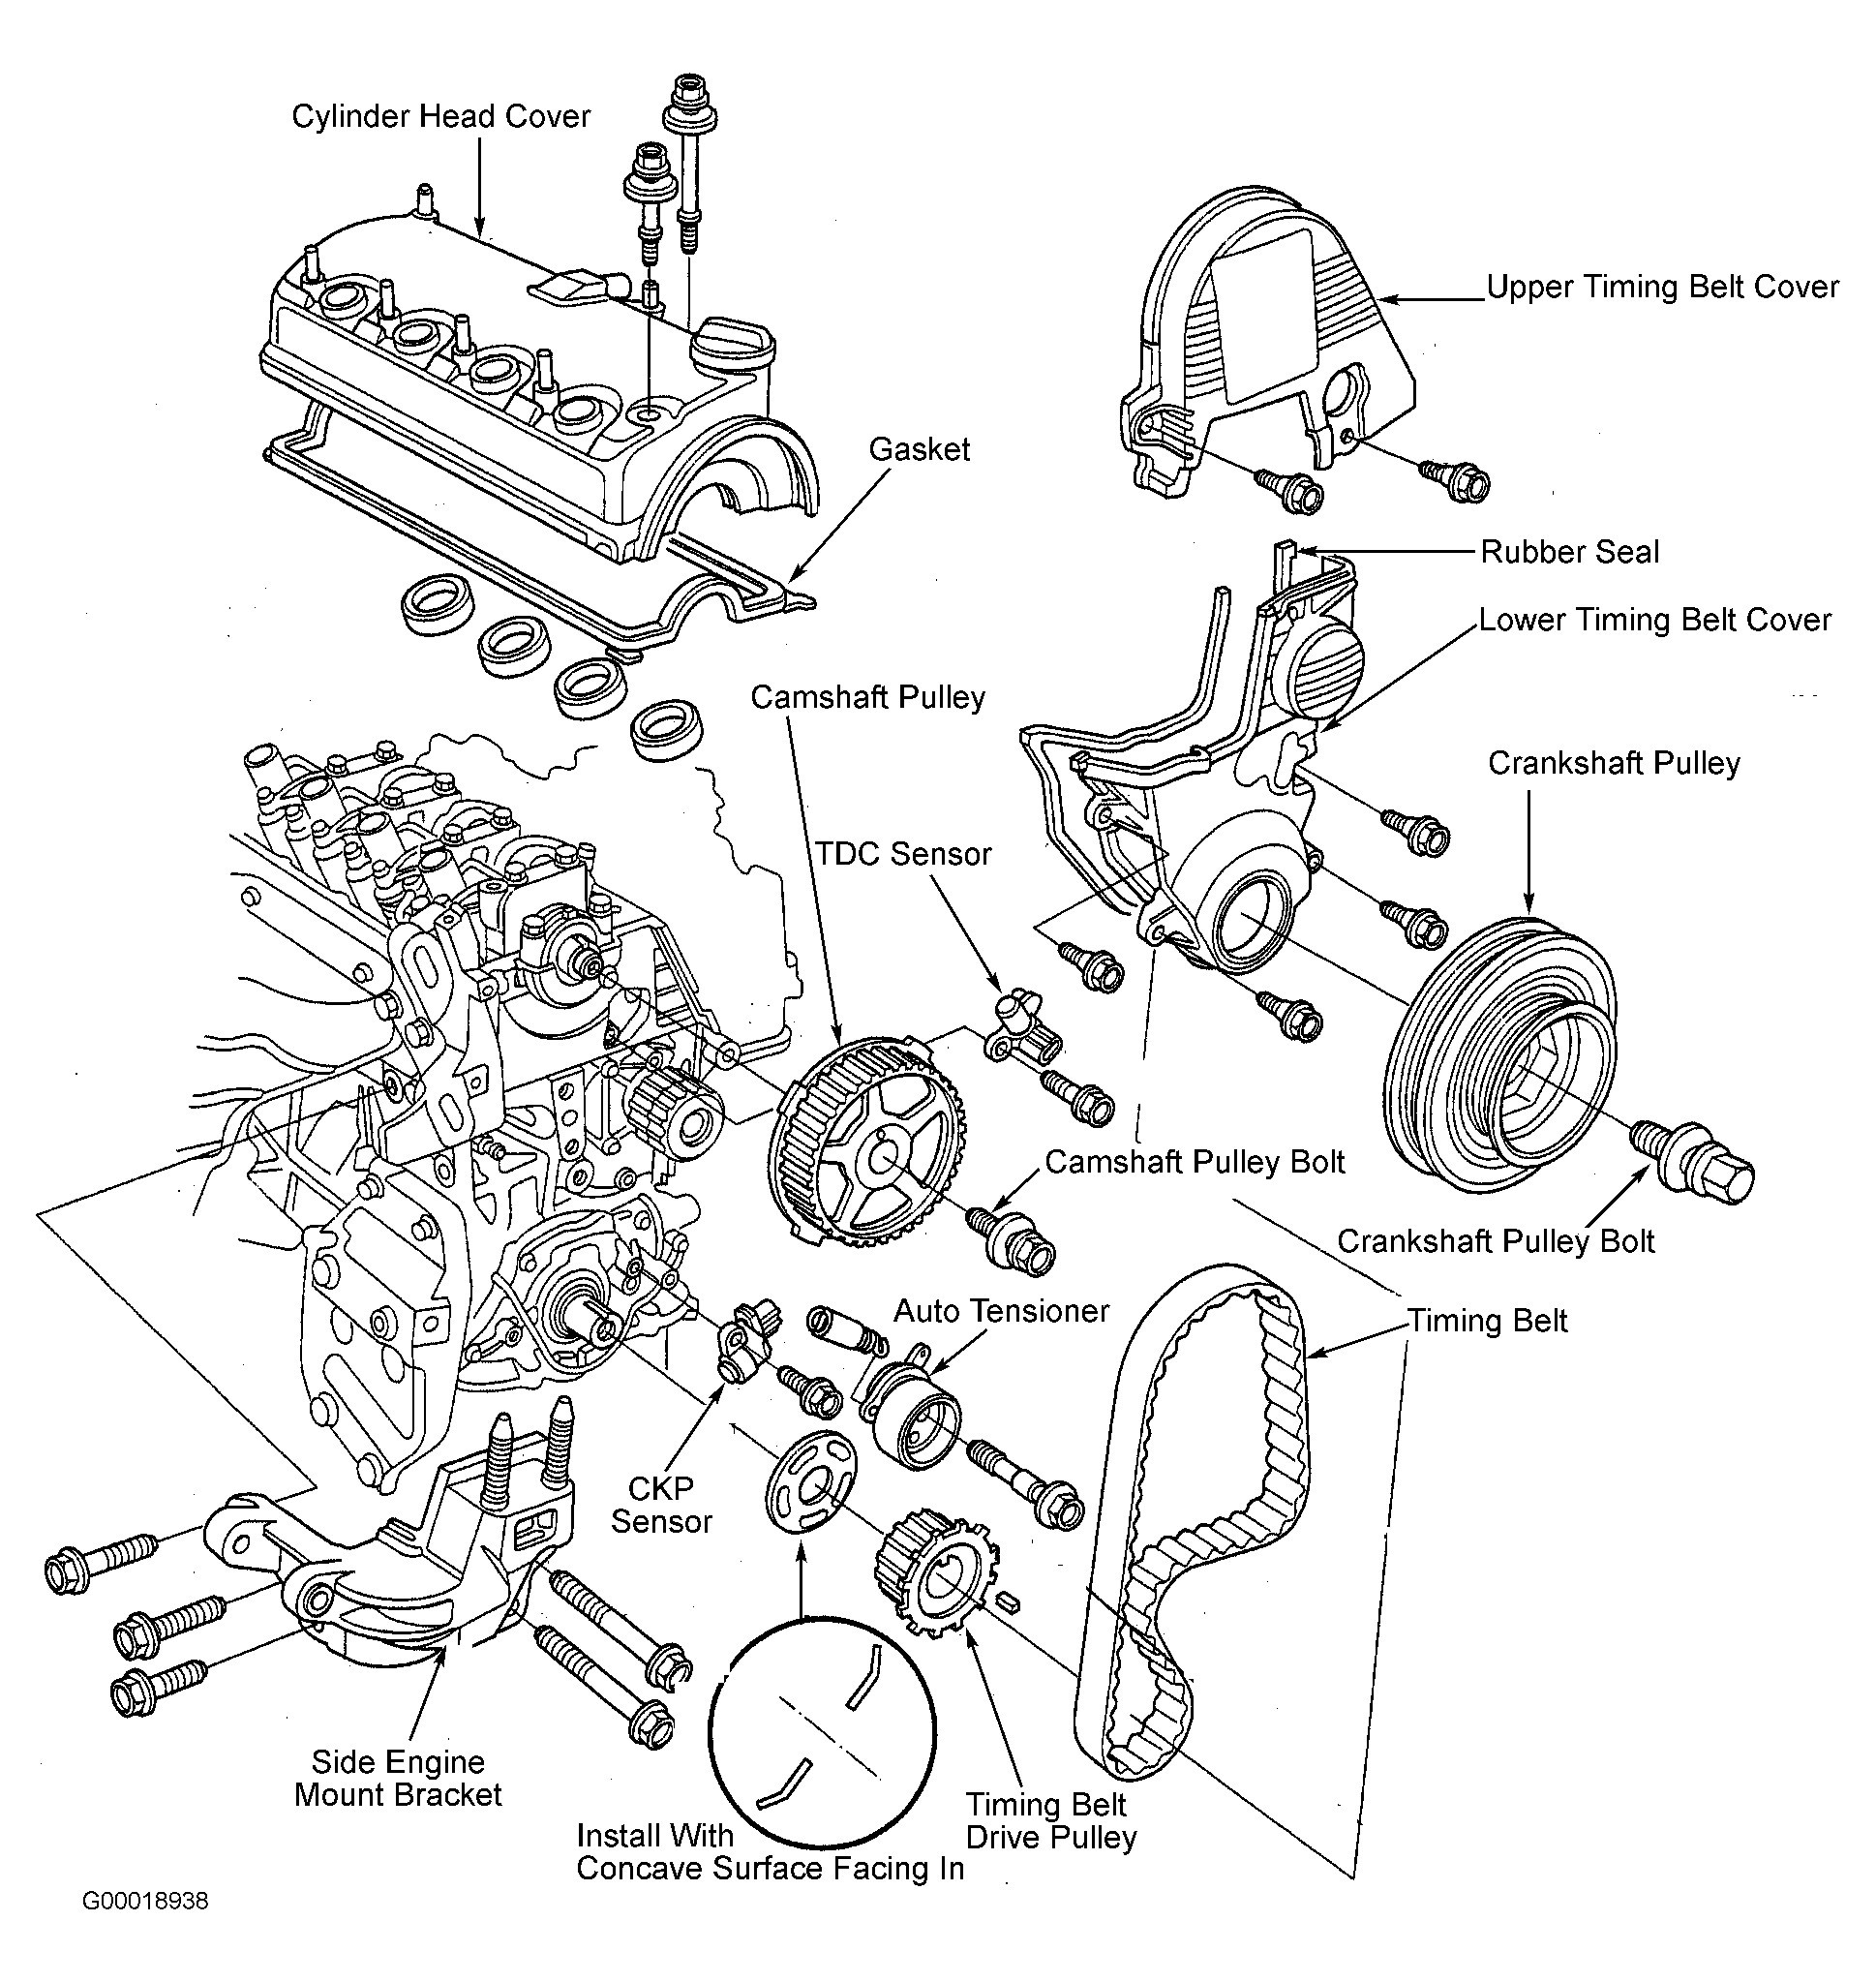 Diagram of honda civic engine 2002 honda civic engine diagram honda rh detoxicrecenze 2002 civic